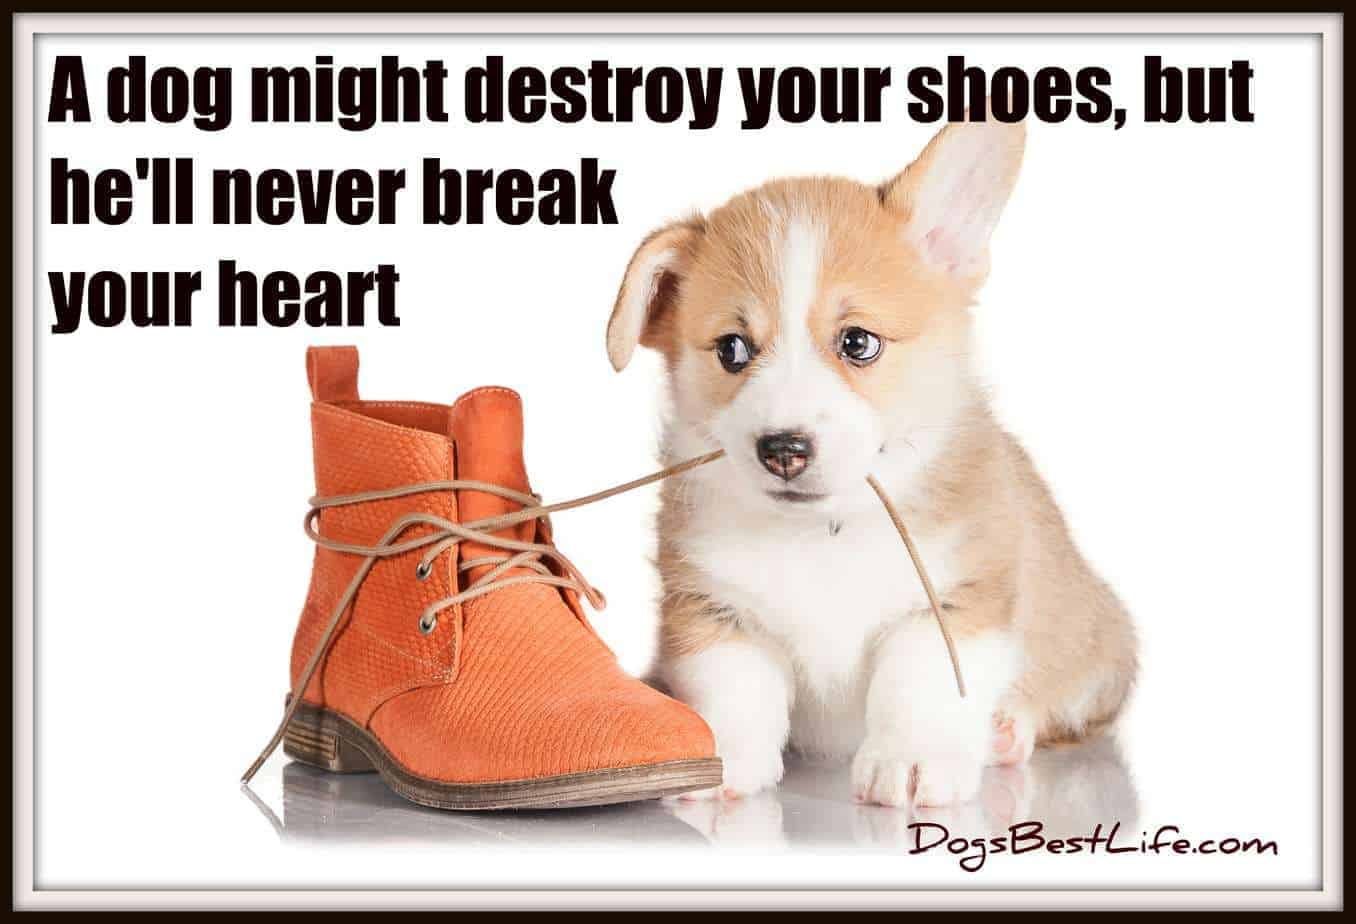 A dog might destroy your shoes, but he'll never break your heart